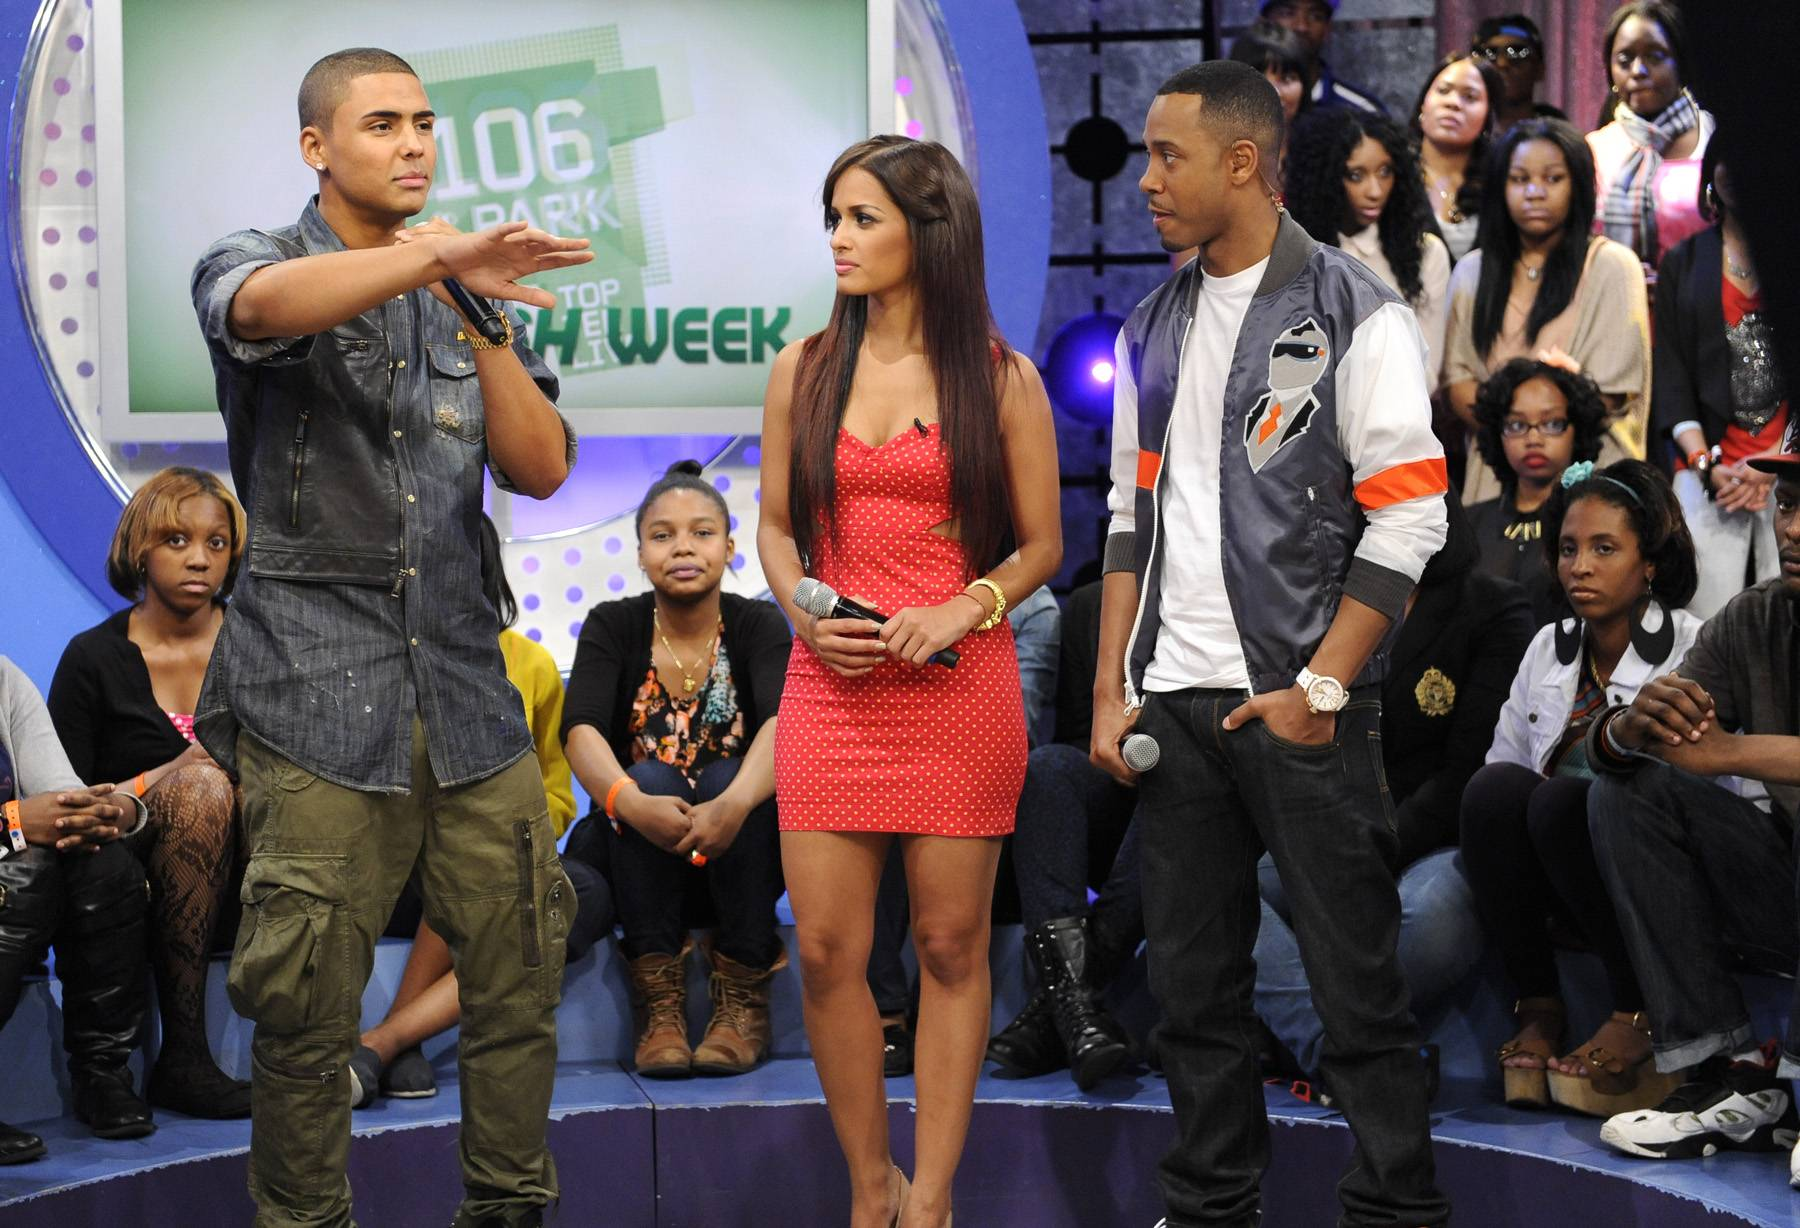 Over There - Quincy with Terrence J and Rocsi Diaz at 106 & Park, May 3, 2012. (Photo: John Ricard / BET)